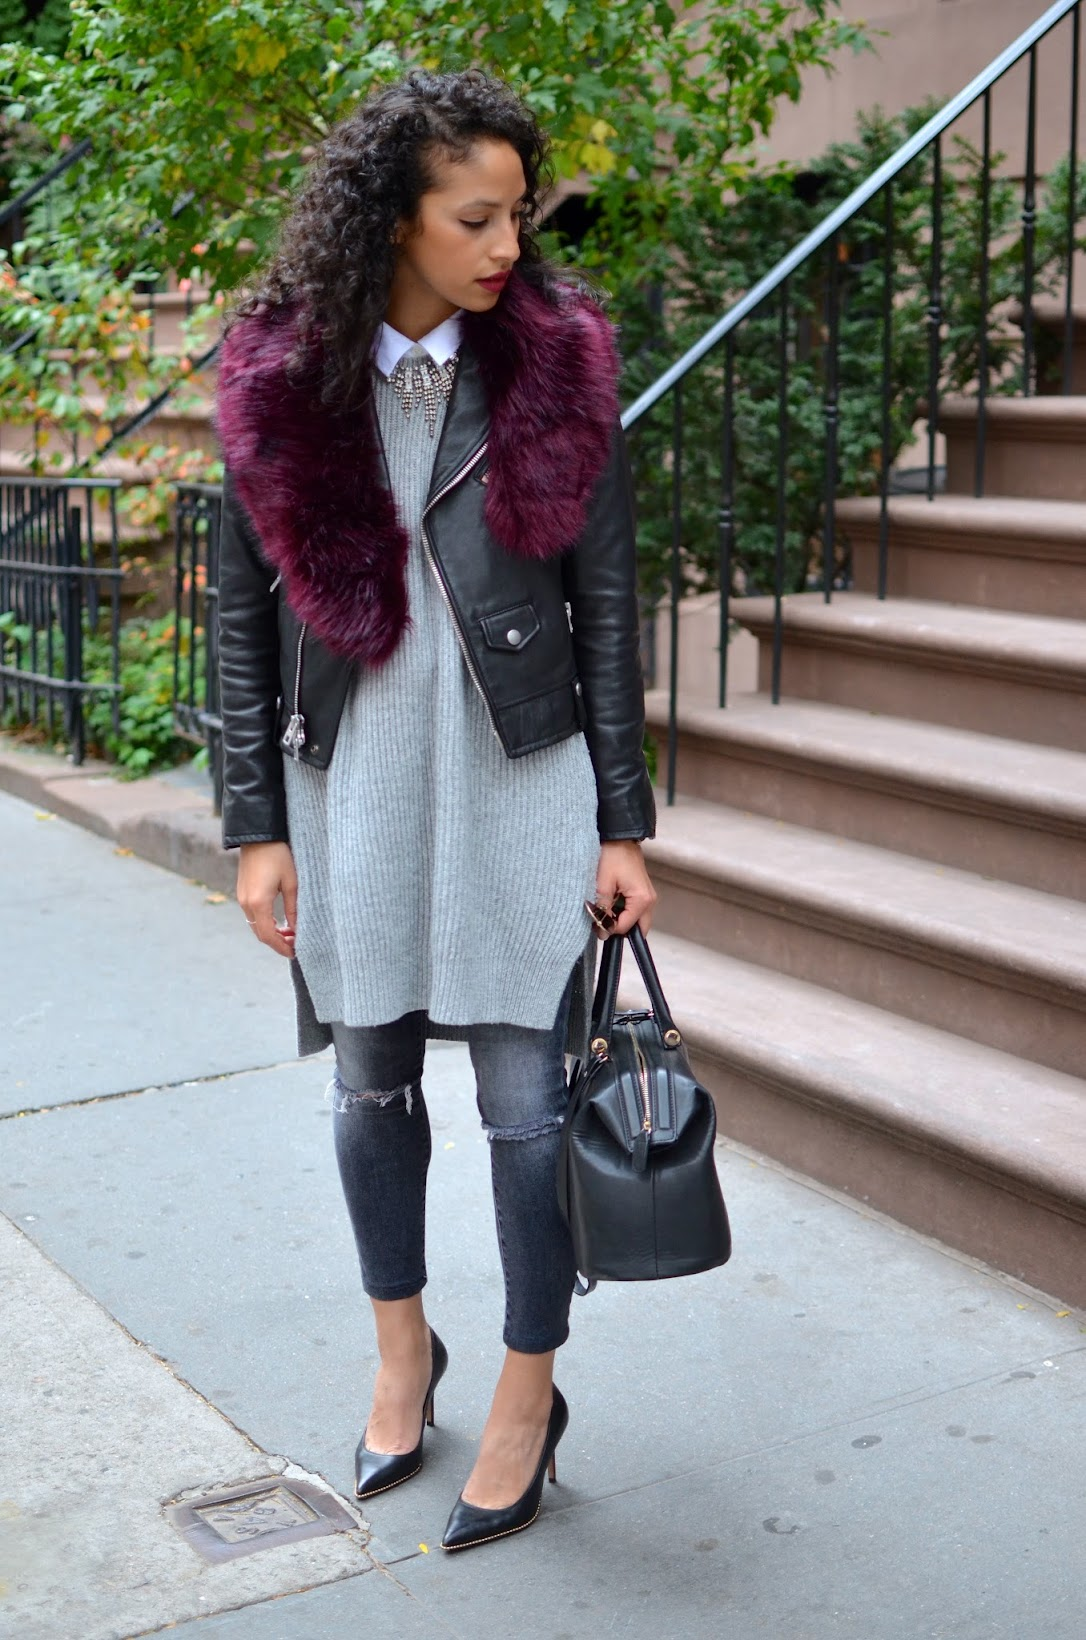 j brand grey distressed denim, Coach Tamara pump, Coach moto jacket, plum lipstick, curly hair, nyc fall style, Fall style, Faux fur stole, Missguided fur stole, what to wear in NYC this fall, all grey style, chic fall style